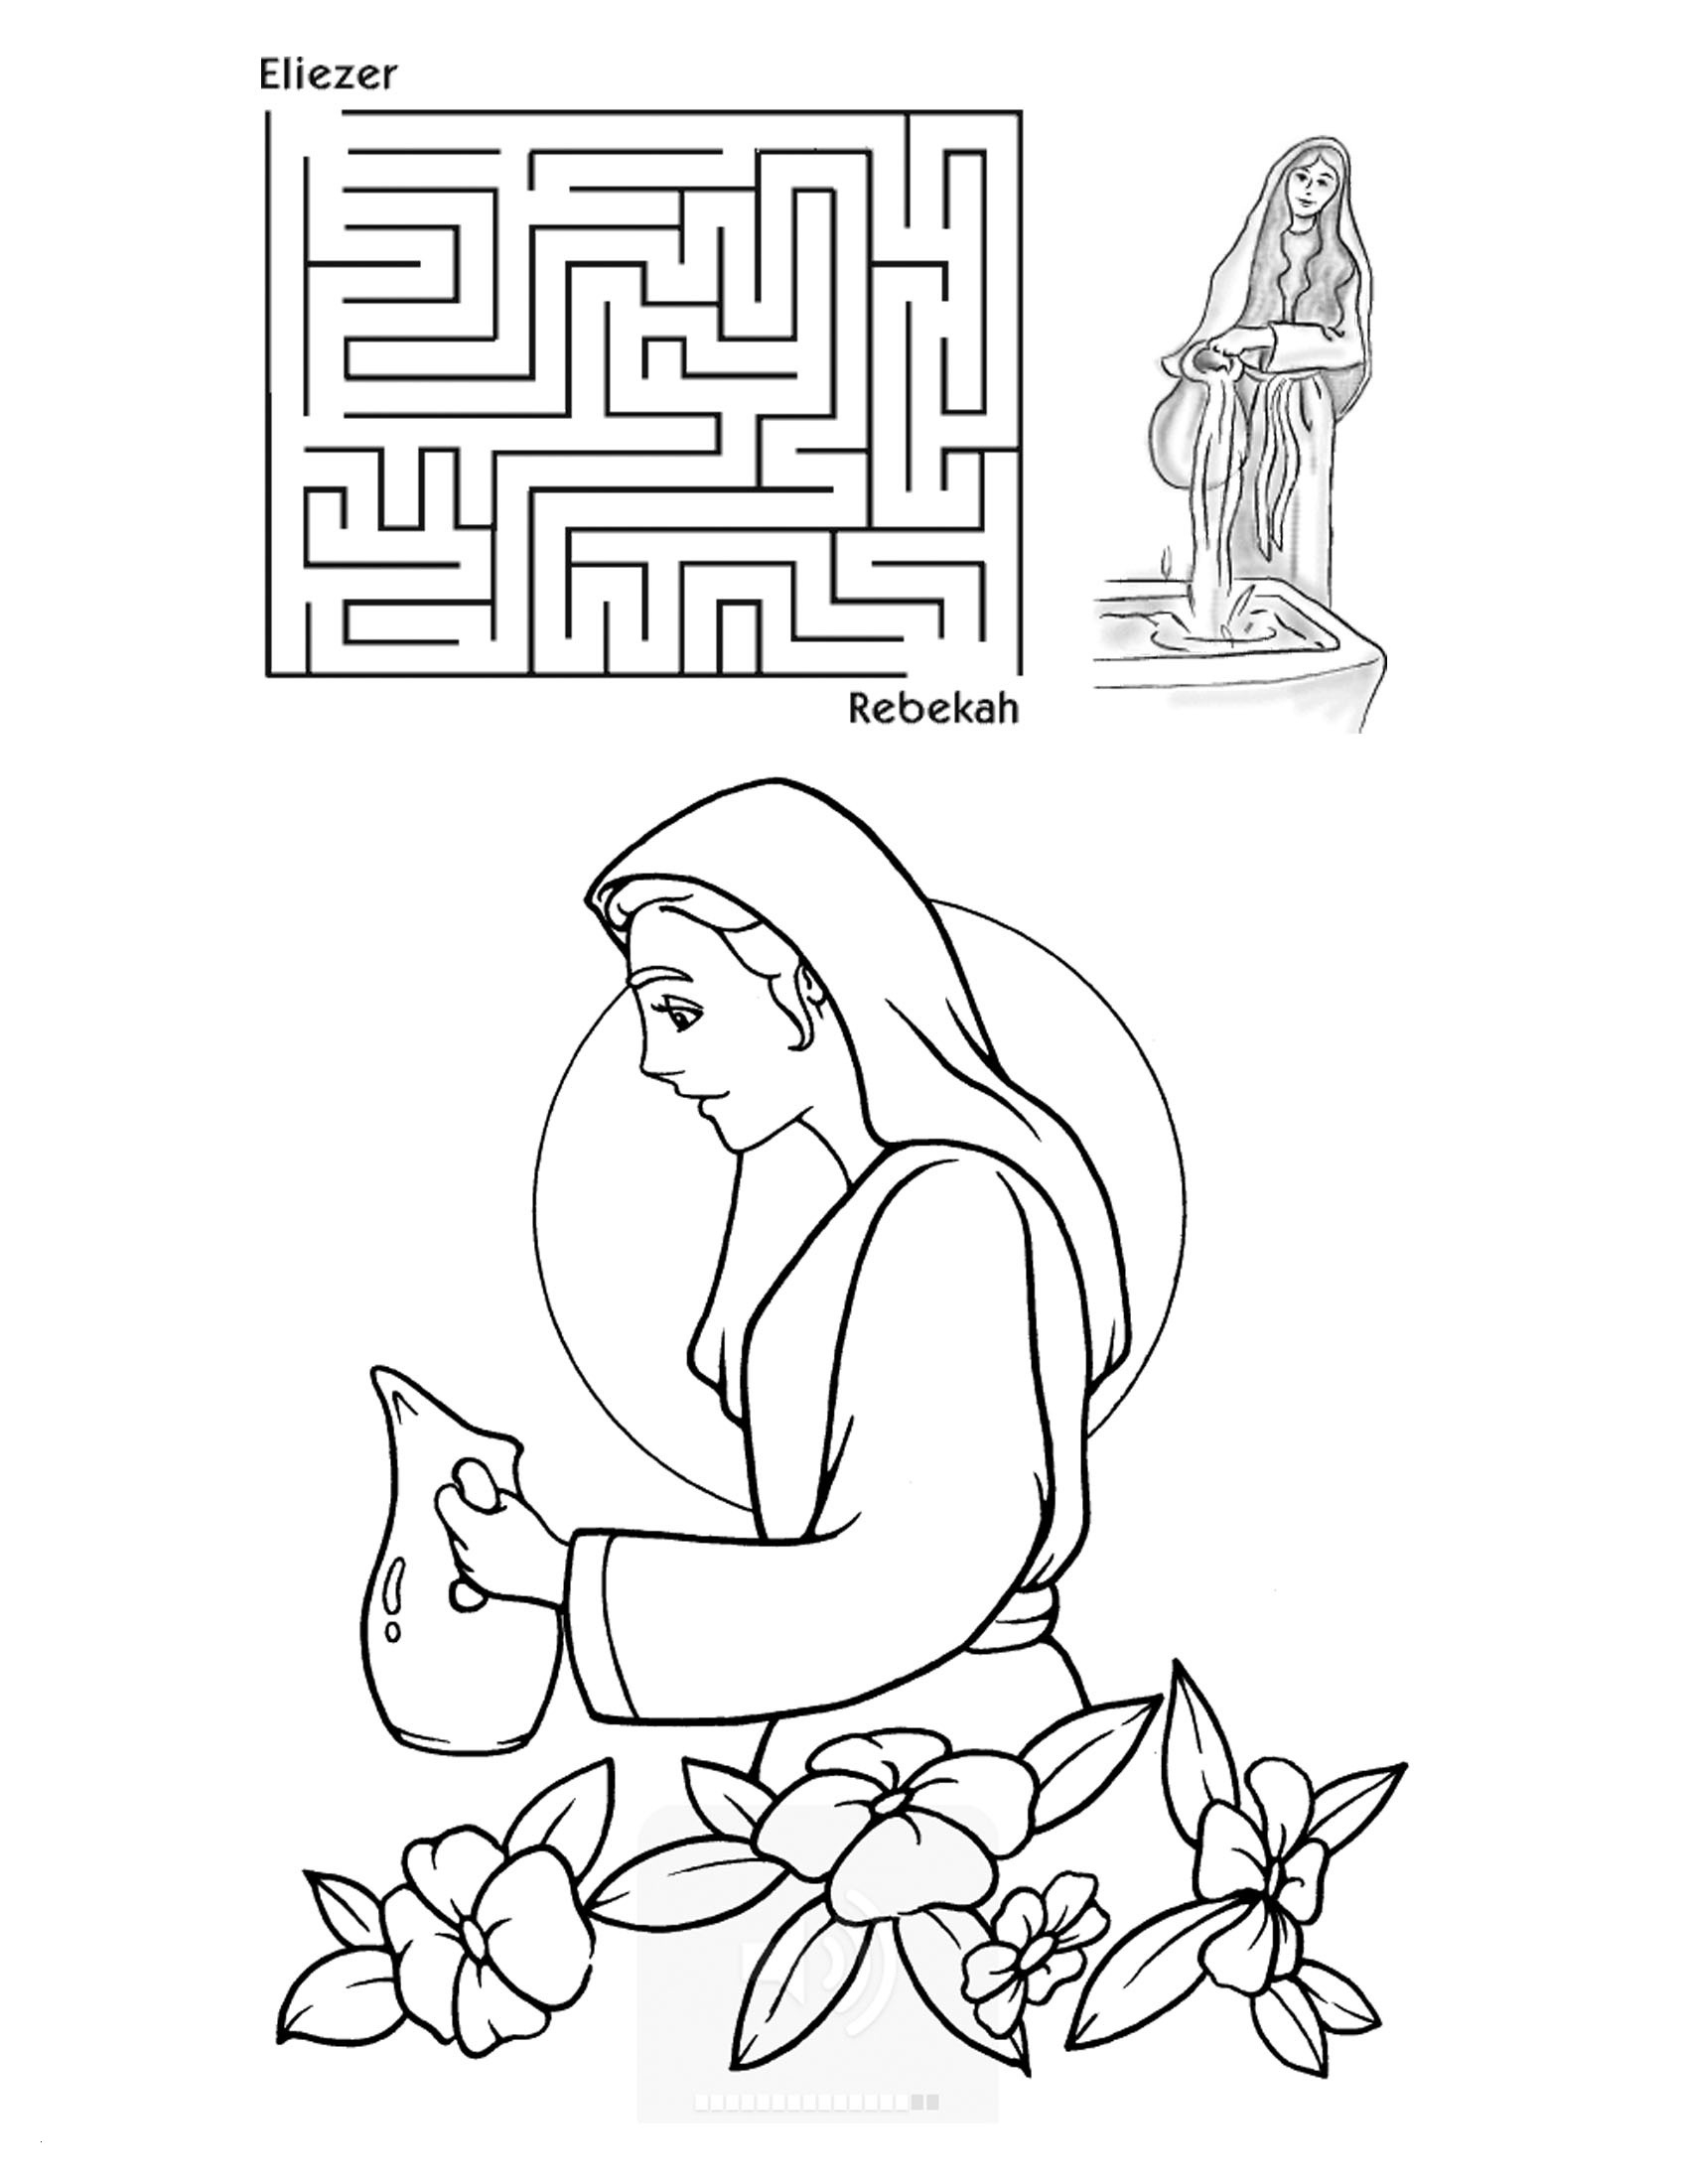 Cain and Abel Coloring Pages  to Print 8m - To print for your project